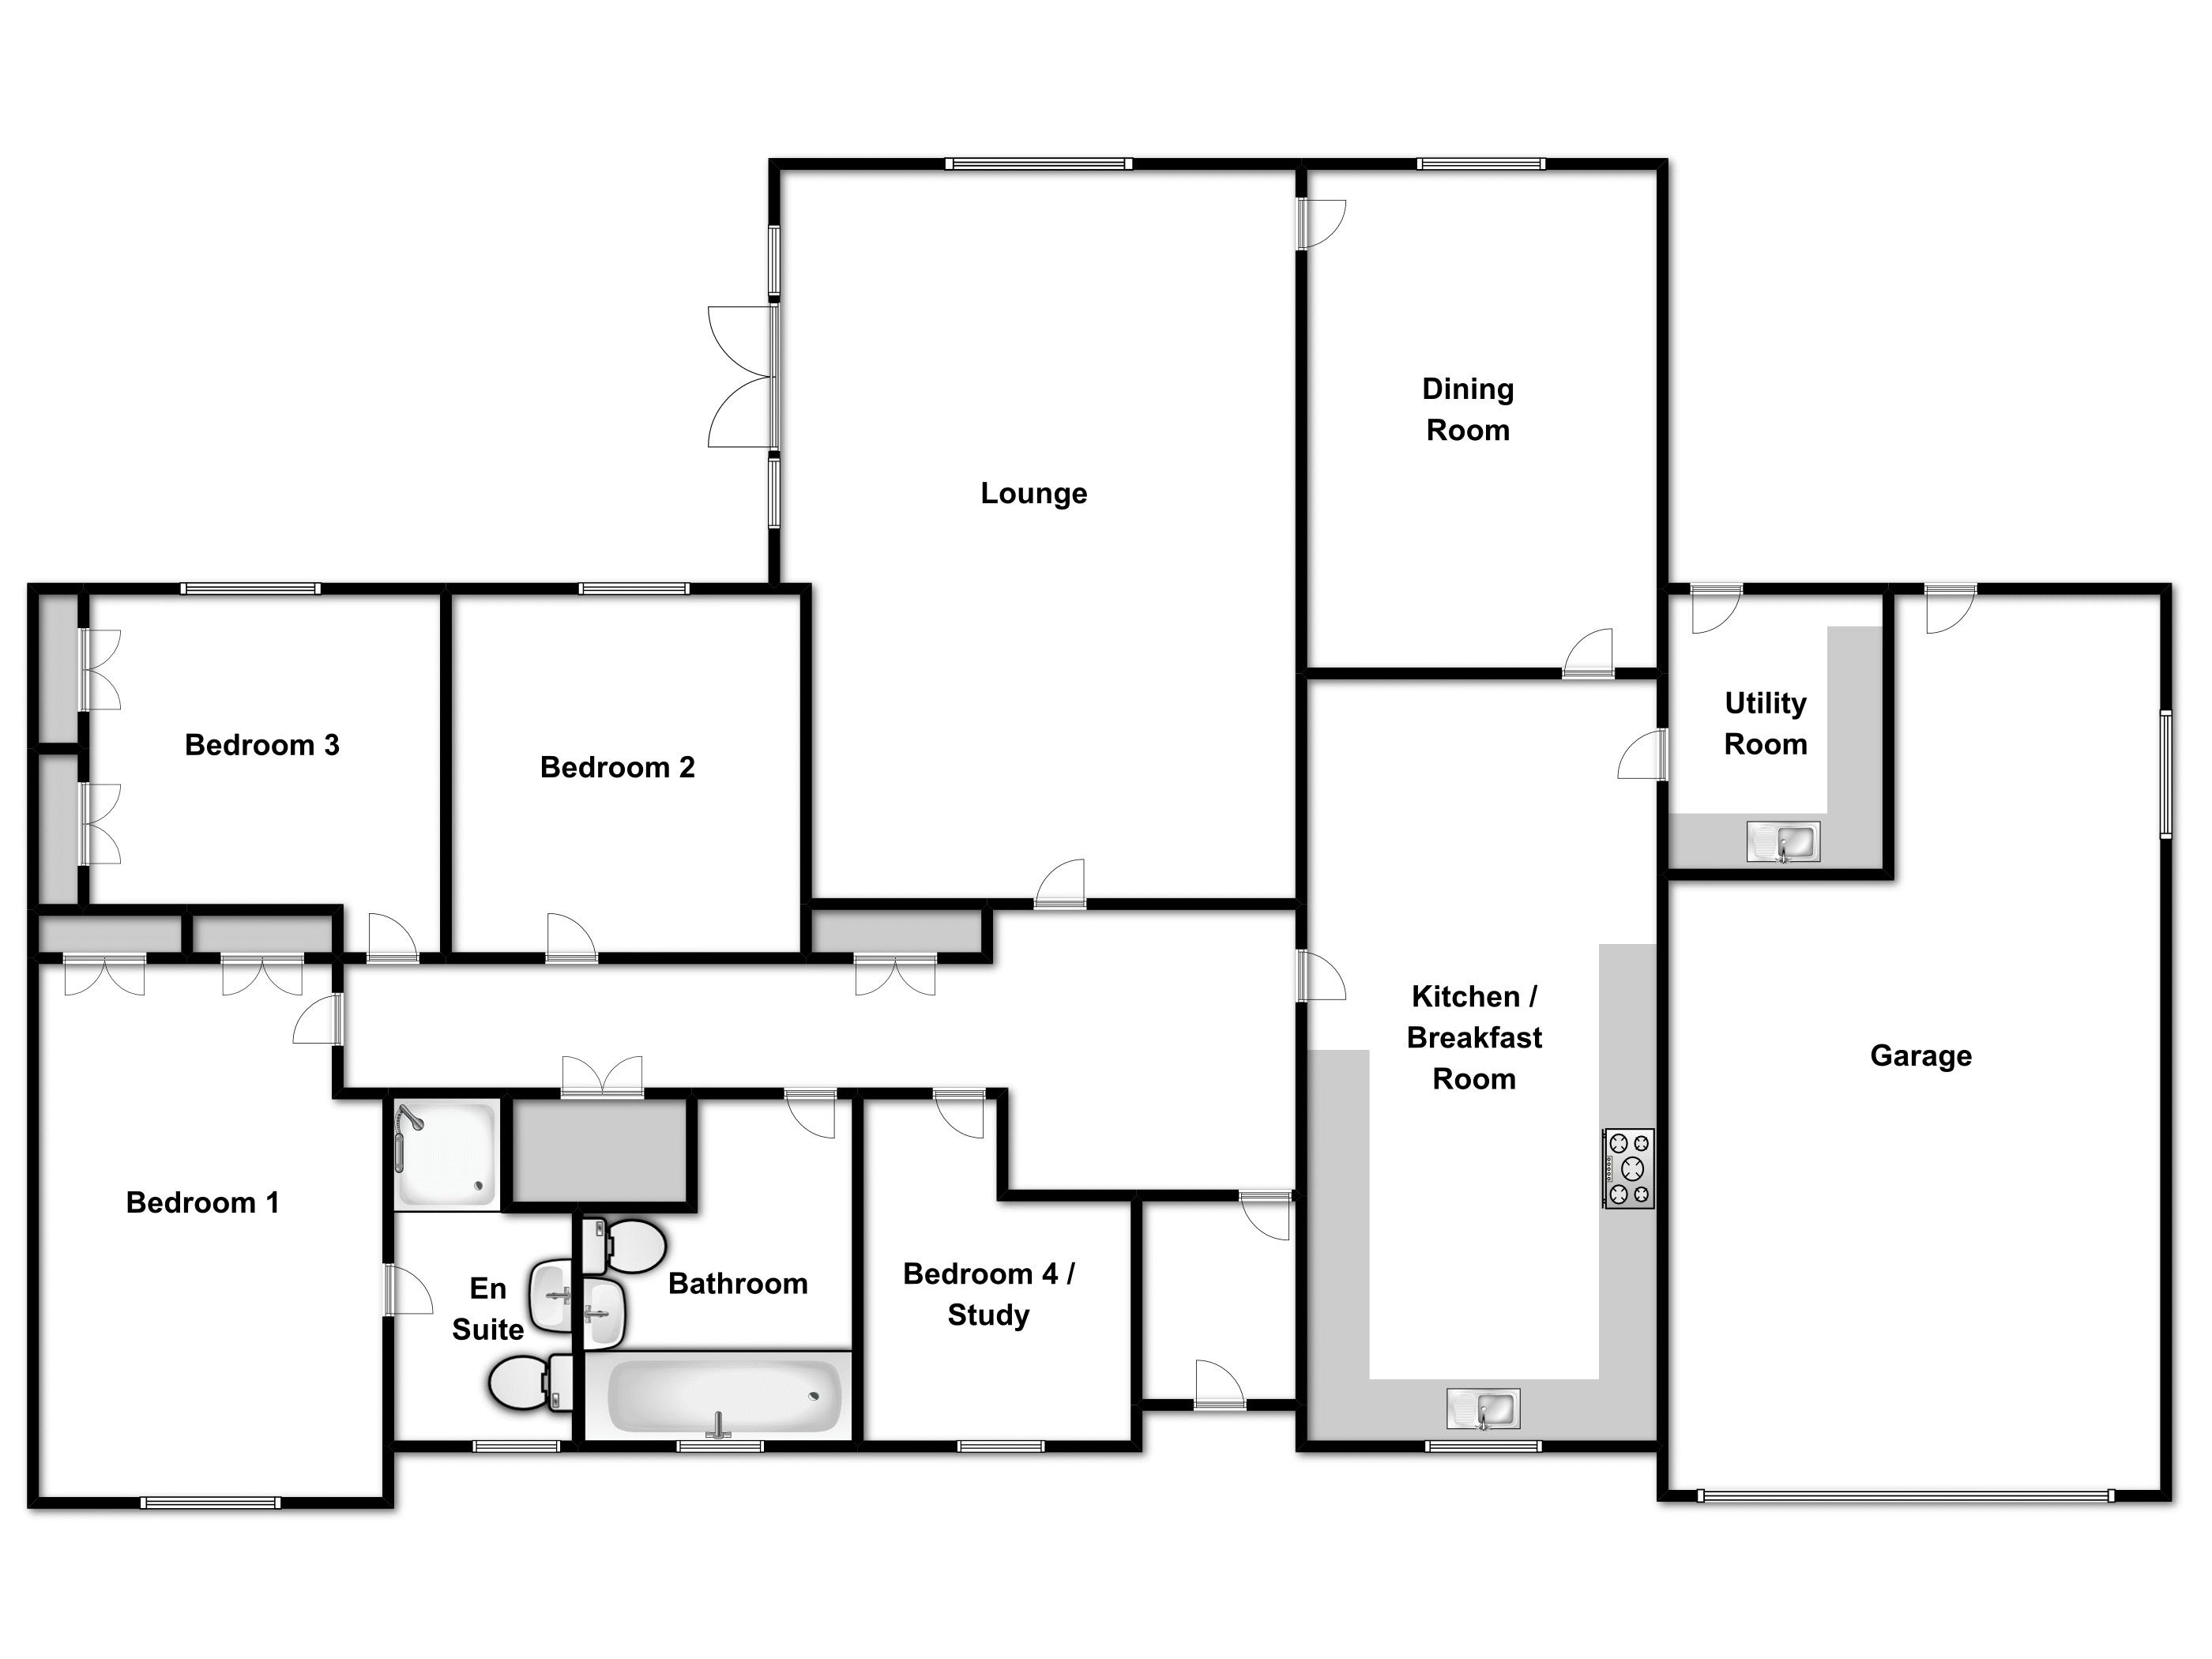 Manor Links, Bishops Stortford floor plan